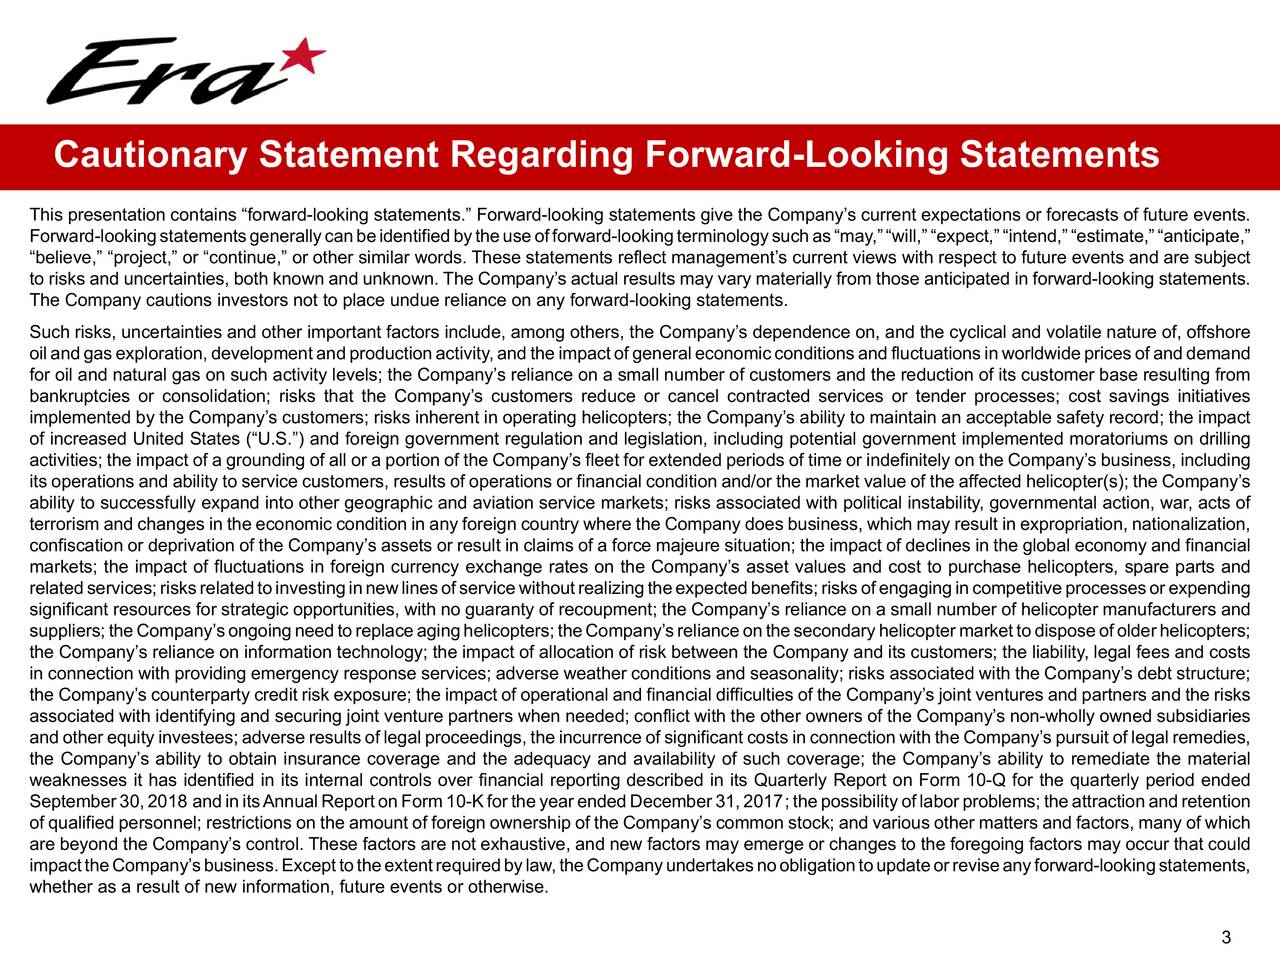 """This presentation contains """"forward-looking statements."""" Forward-looking statements give the Company's current expectations or forecasts of future events. Forward-lookingstatementsgenerallycanbeidentifiedbytheuseofforward-lookingterminologysuchas""""may,""""""""will,""""""""expect,""""""""intend,""""""""estimate,""""""""anticipate,"""" """"believe,"""" """"project,"""" or """"continue,"""" or other similar words. These statements reflect management's current views with respect to future events and are subject to risks and uncertainties, both known and unknown. The Company's actual results may vary materially from those anticipated in forward-looking statements. The Company cautions investors not to place undue reliance on any forward-looking statements. Such risks, uncertainties and other important factors include, among others, the Company's dependence on, and the cyclical and volatile nature of, offshore oilandgasexploration,developmentandproductionactivity,andtheimpactofgeneraleconomicconditionsandfluctuationsinworldwidepricesofanddemand for oil and natural gas on such activity levels; the Company's reliance on a small number of customers and the reduction of its customer base resulting from bankruptcies or consolidation; risks that the Company's customers reduce or cancel contracted services or tender processes; cost savings initiatives implemented by the Company's customers; risks inherent in operating helicopters; the Company's ability to maintain an acceptable safety record; the impact of increased United States (""""U.S."""") and foreign government regulation and legislation, including potential government implemented moratoriums on drilling activities; the impact of a grounding of all or a portion of the Company's fleet for extended periods of time or indefinitely on the Company's business, including its operations and ability to service customers, results of operations or financial condition and/or the market value of the affected helicopter(s); the Company's ability to successfully expand into other geographic and"""